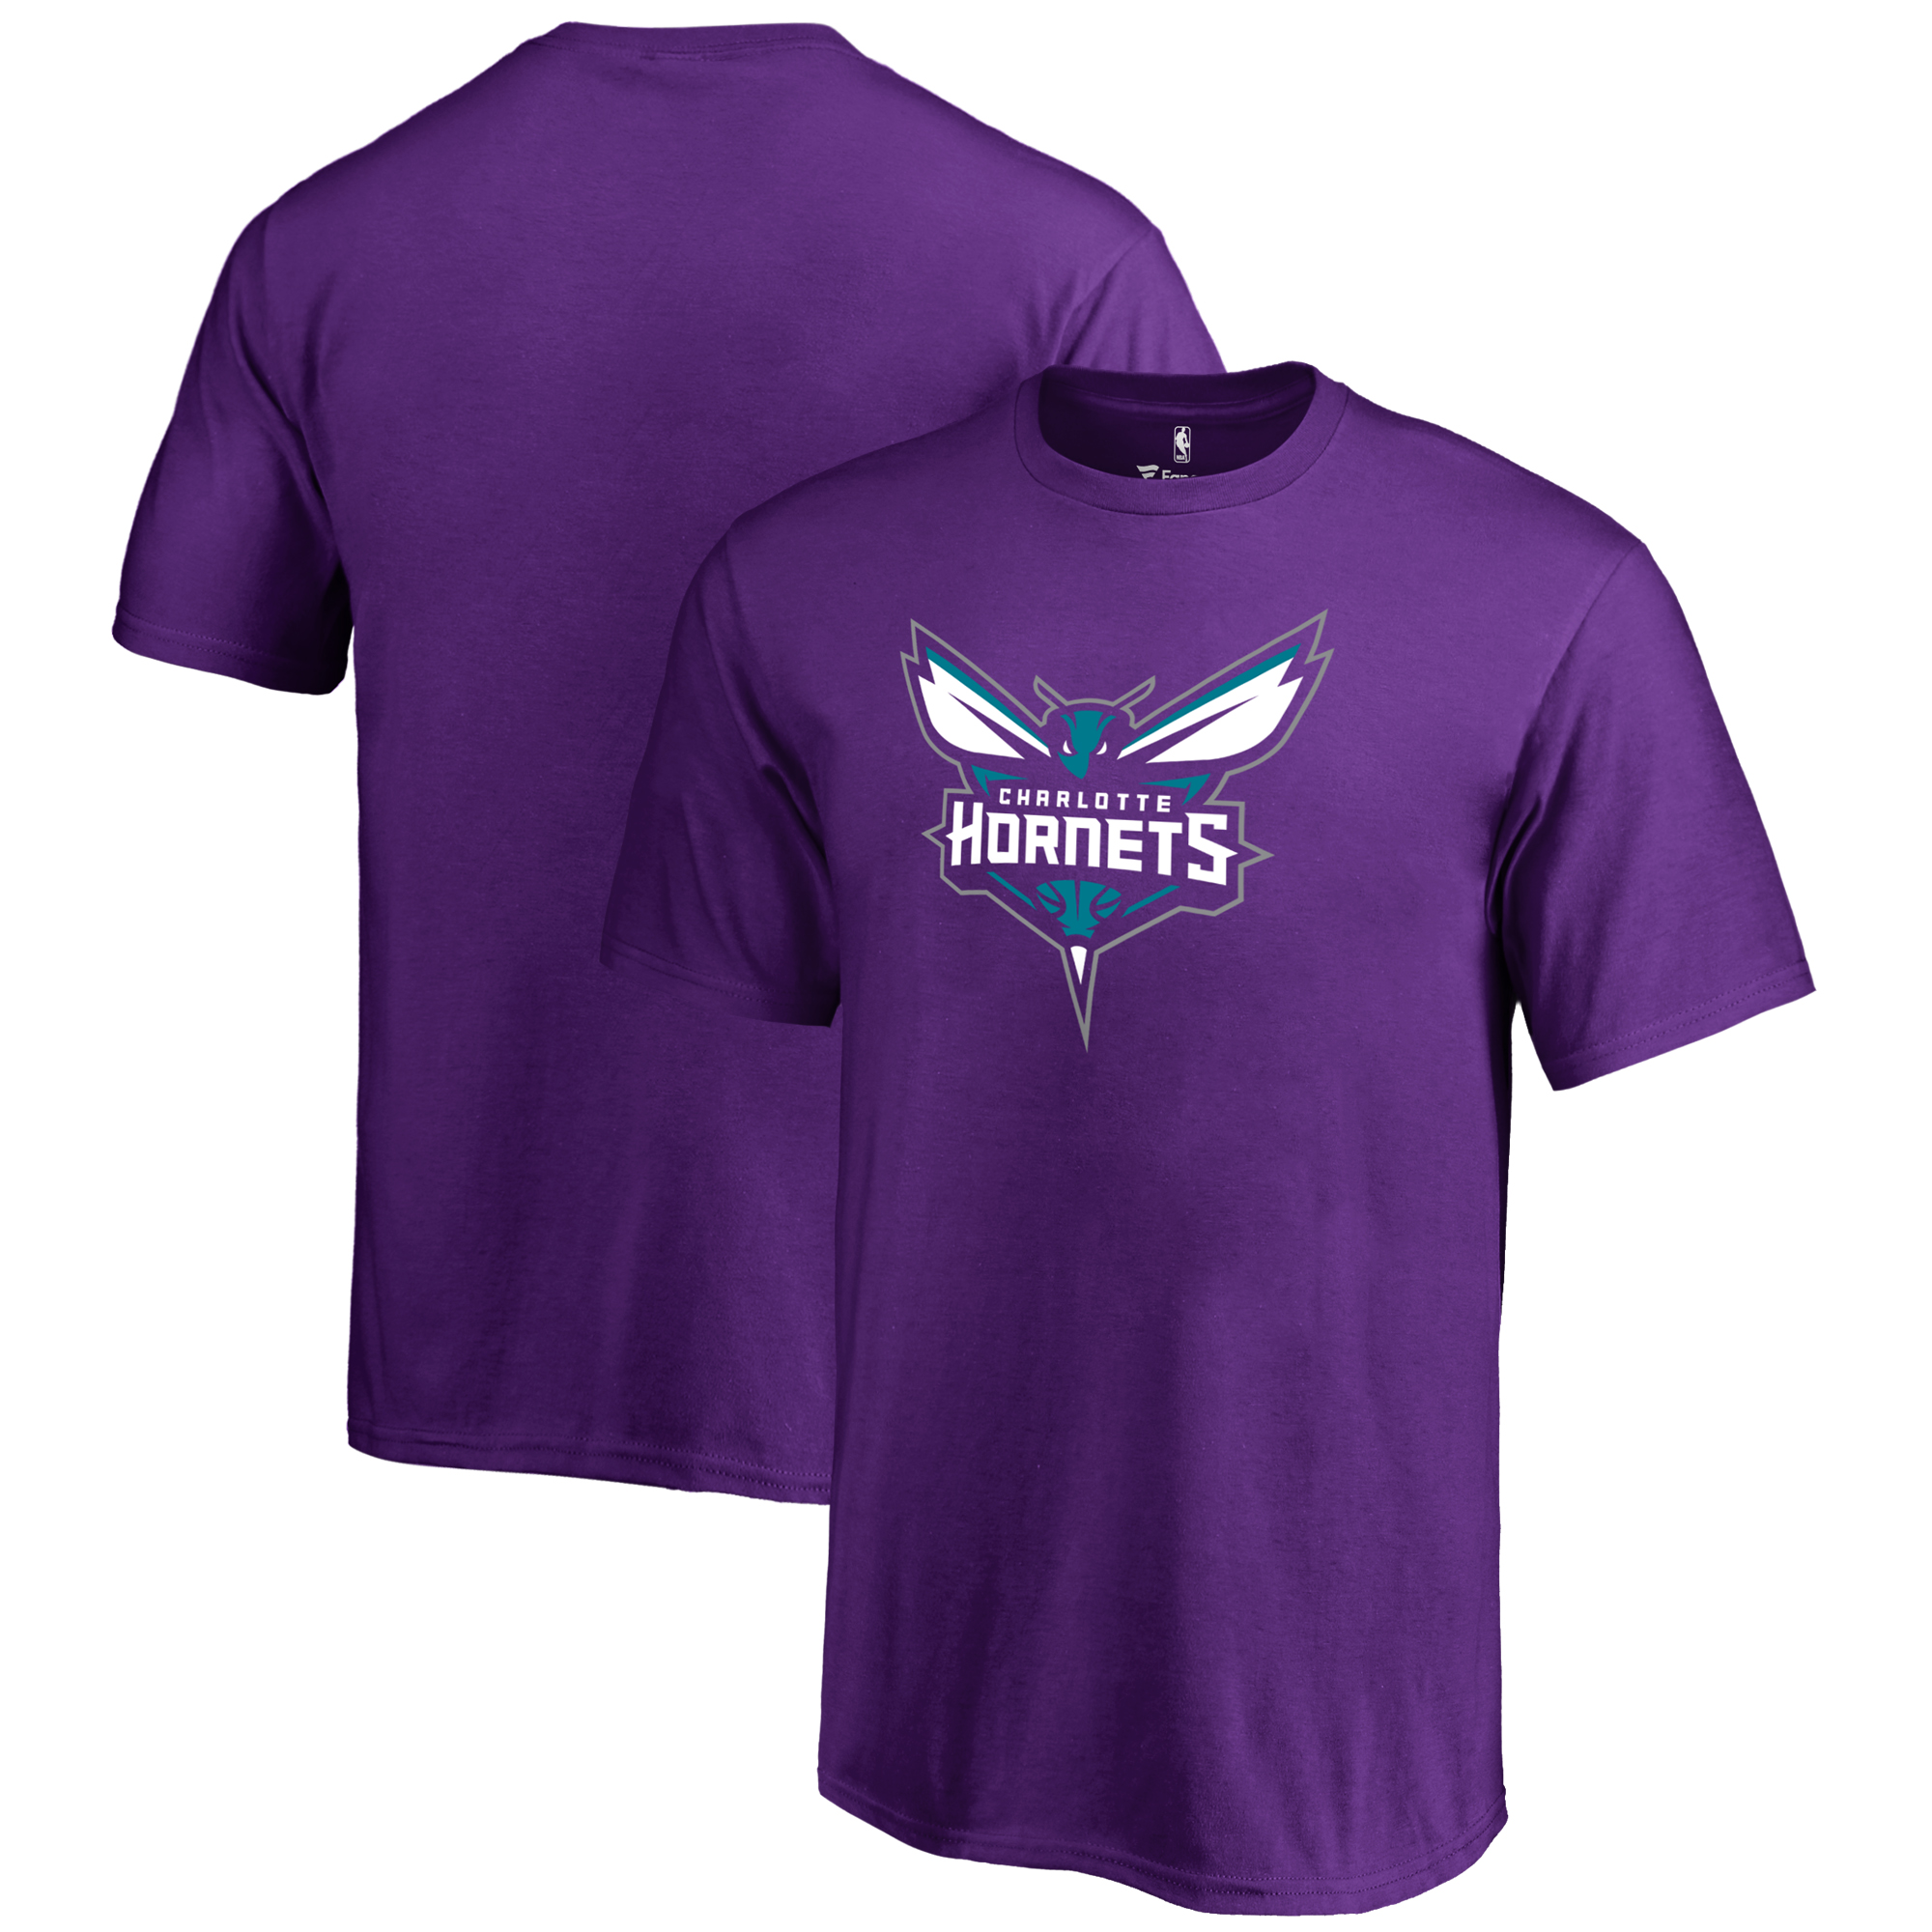 Charlotte Hornets Fanatics Branded Youth Primary Logo T-Shirt - Purple